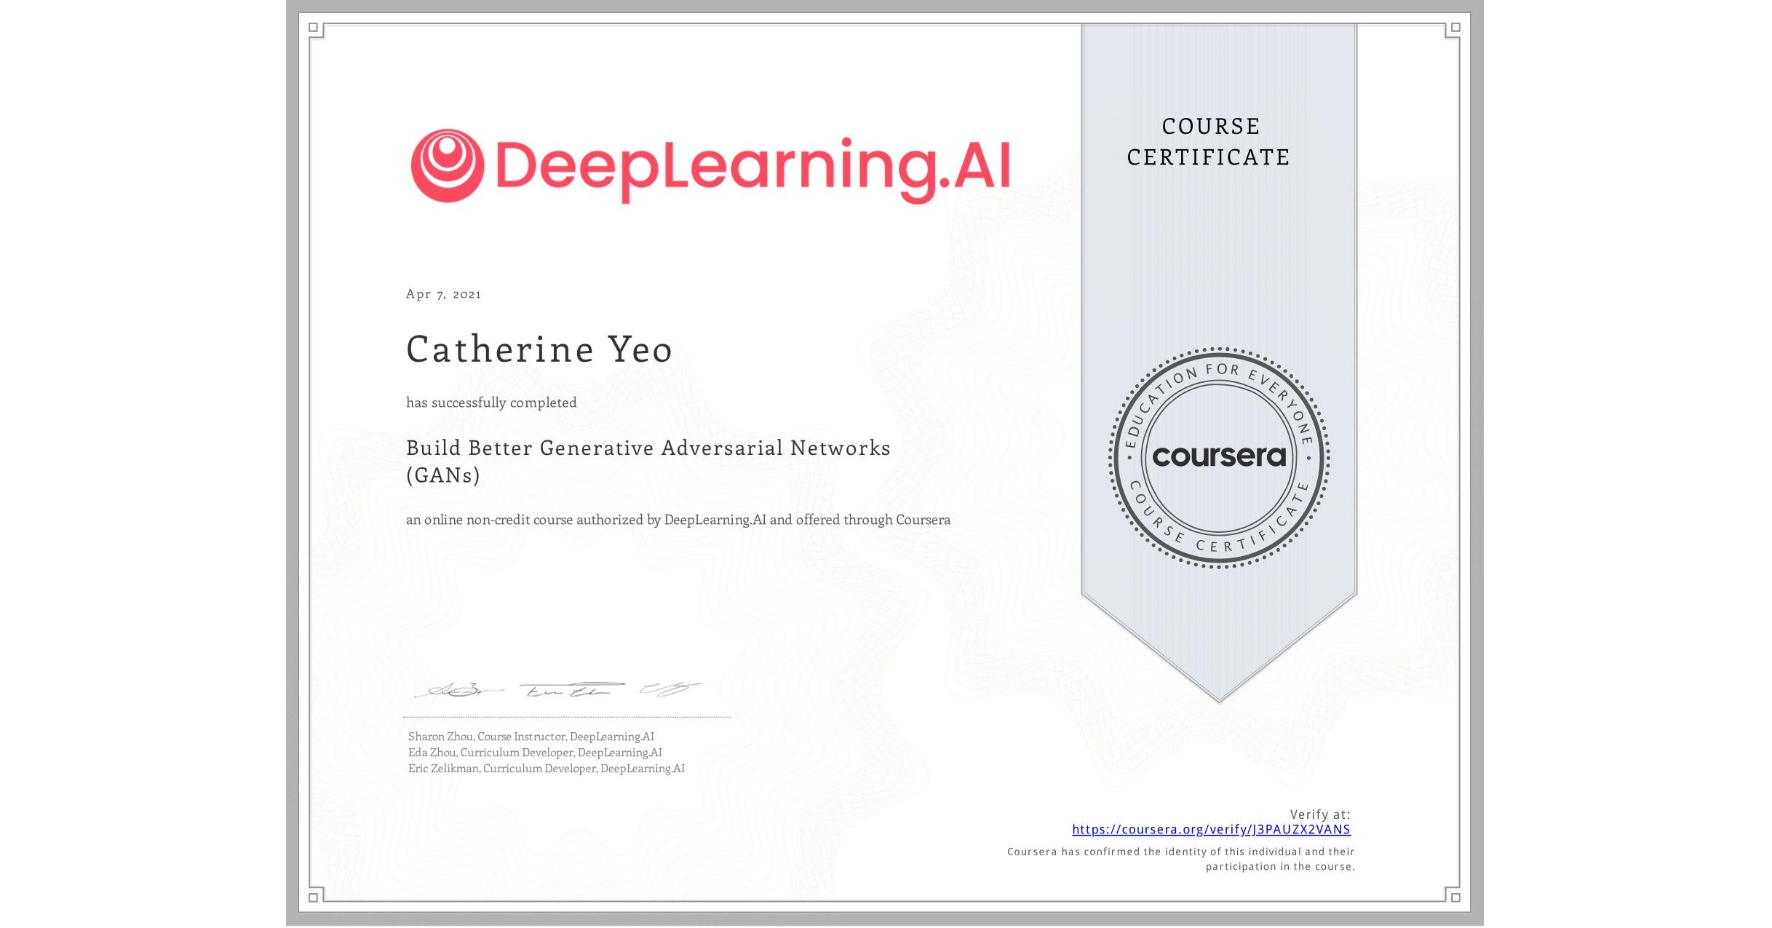 View certificate for Catherine Yeo, Build Better Generative Adversarial Networks (GANs), an online non-credit course authorized by DeepLearning.AI and offered through Coursera